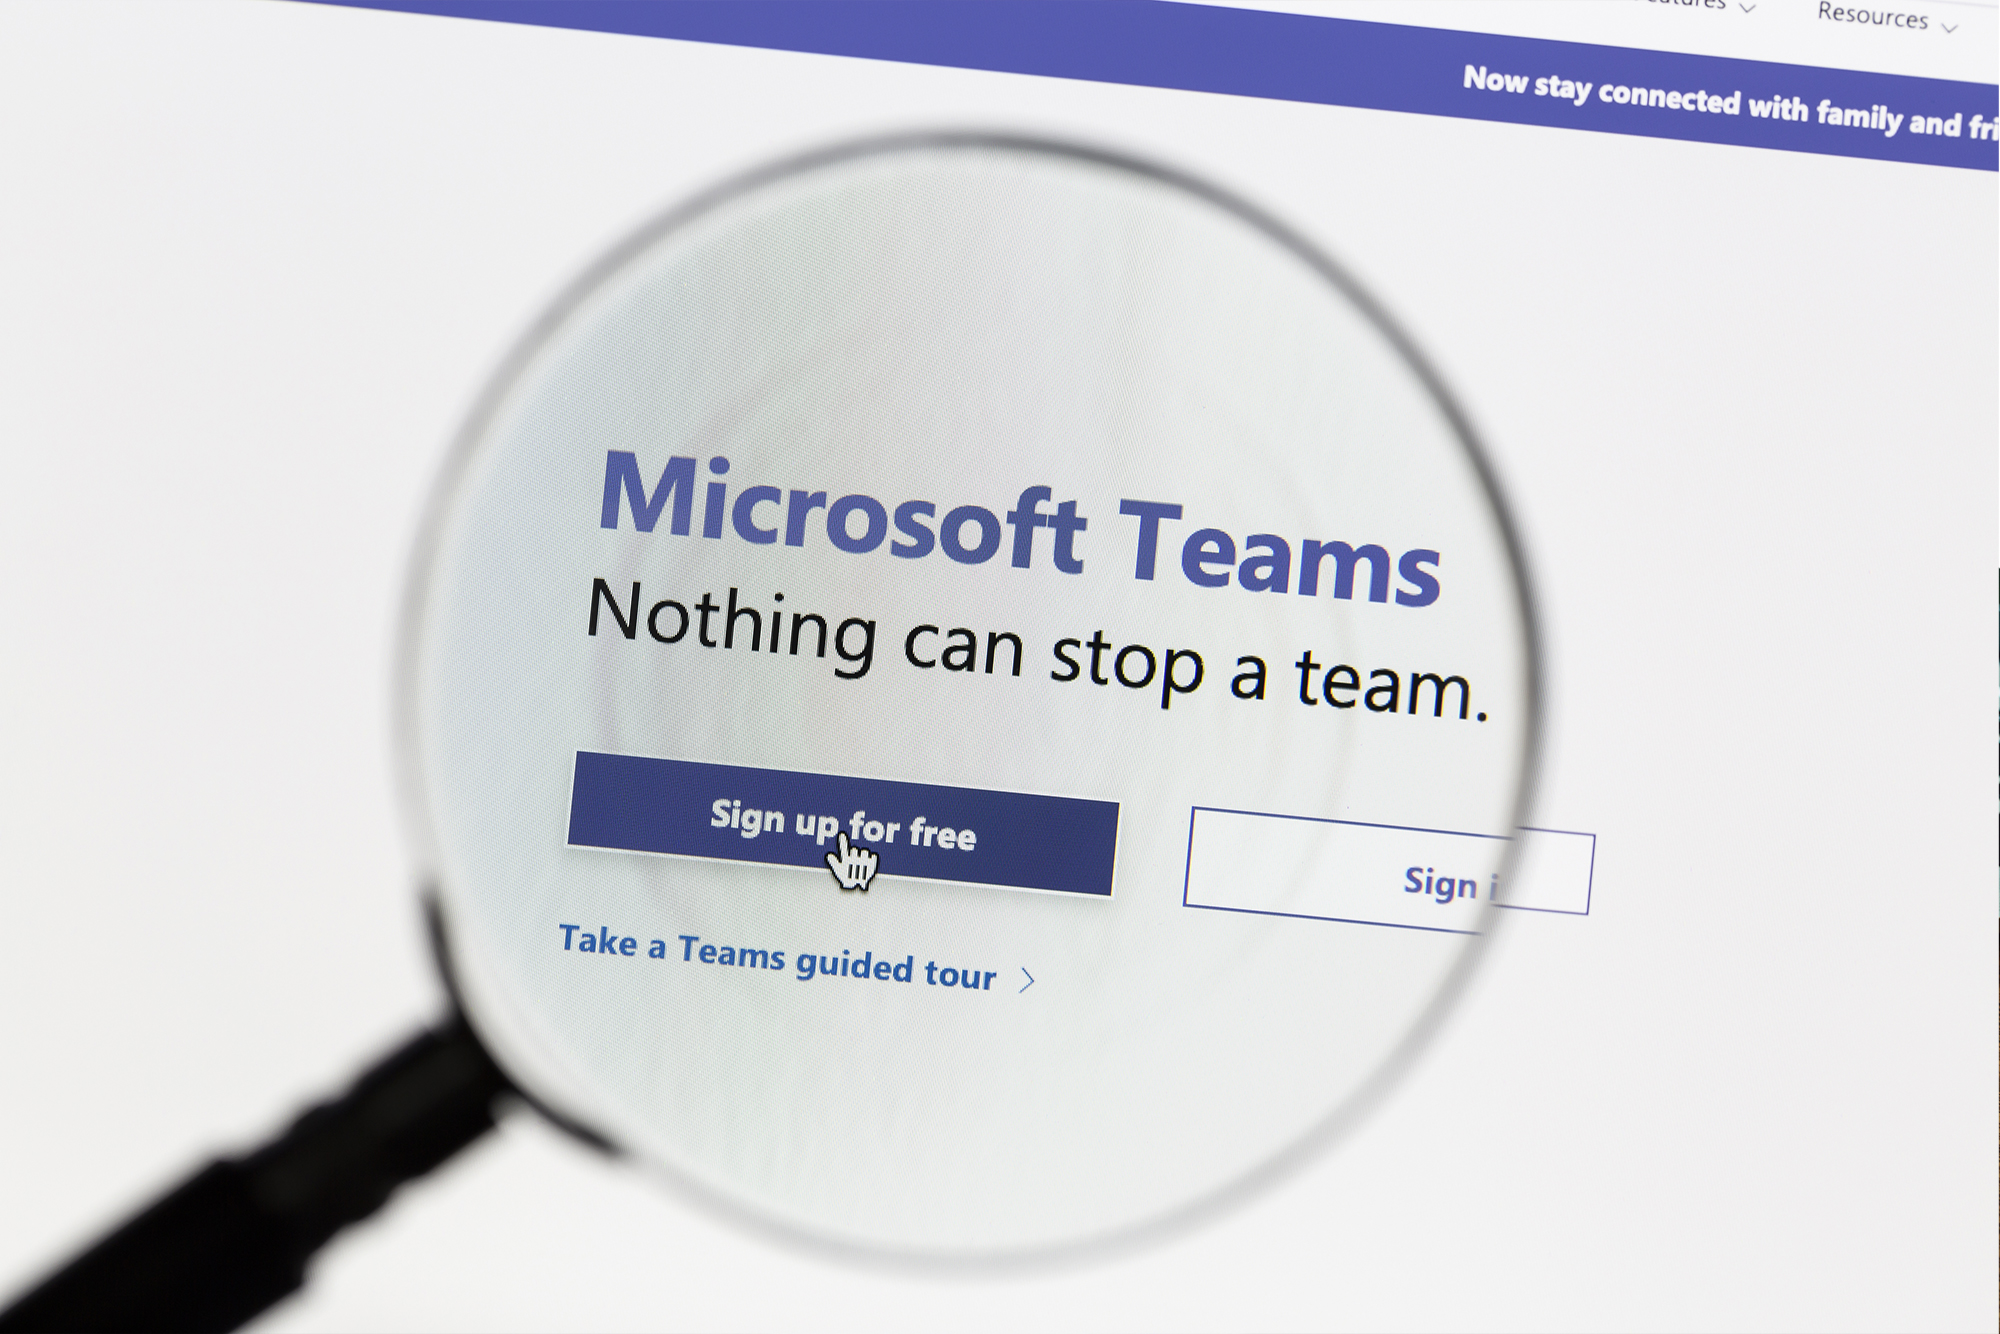 Microsoft Teams website homepage screenshot